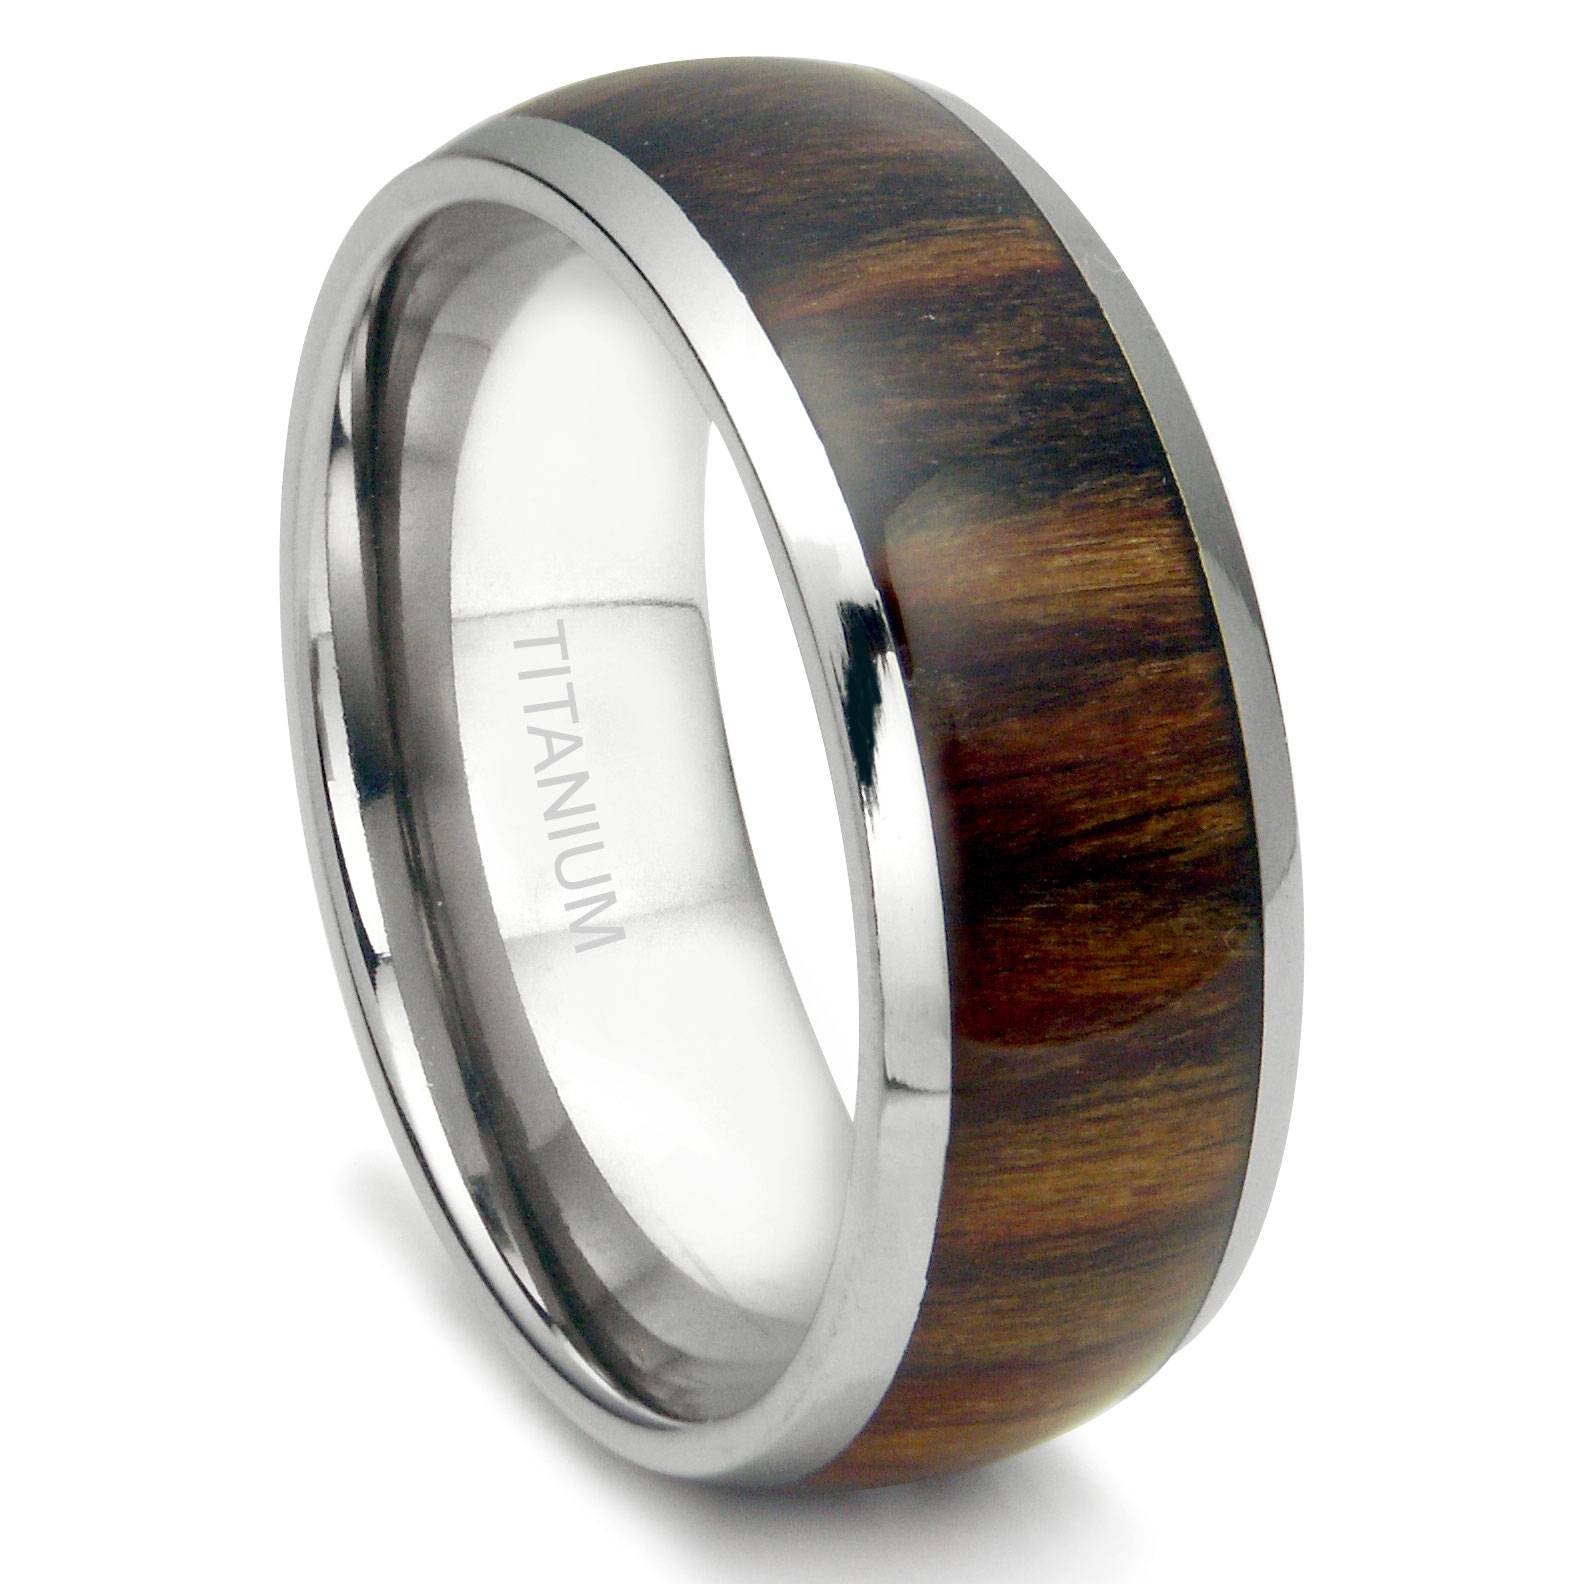 Titanium 8Mm Domed Santos Rosewood Inlay Wedding Band Ring Pertaining To Titanium Mens Wedding Bands (View 12 of 15)